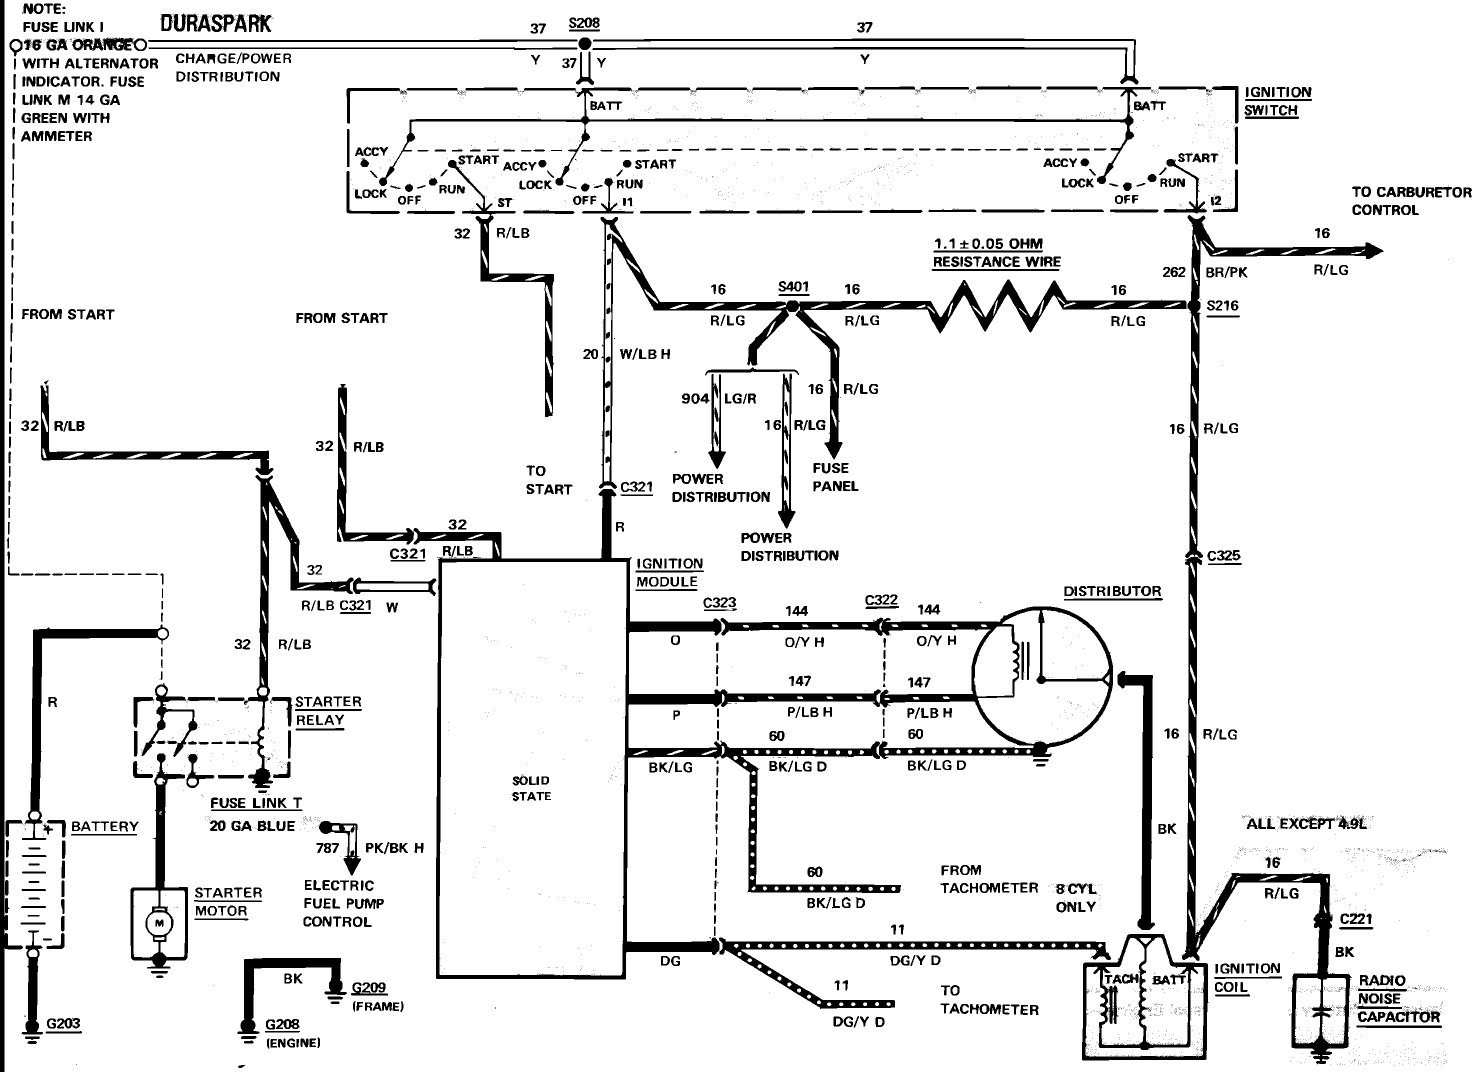 [WQZT_9871]  Wiring Diagram 1984 Ford E 150 Van | Wiring Diagram | 1996 Ford F750 Wiring Schematic |  | Wiring Diagram - Autoscout24